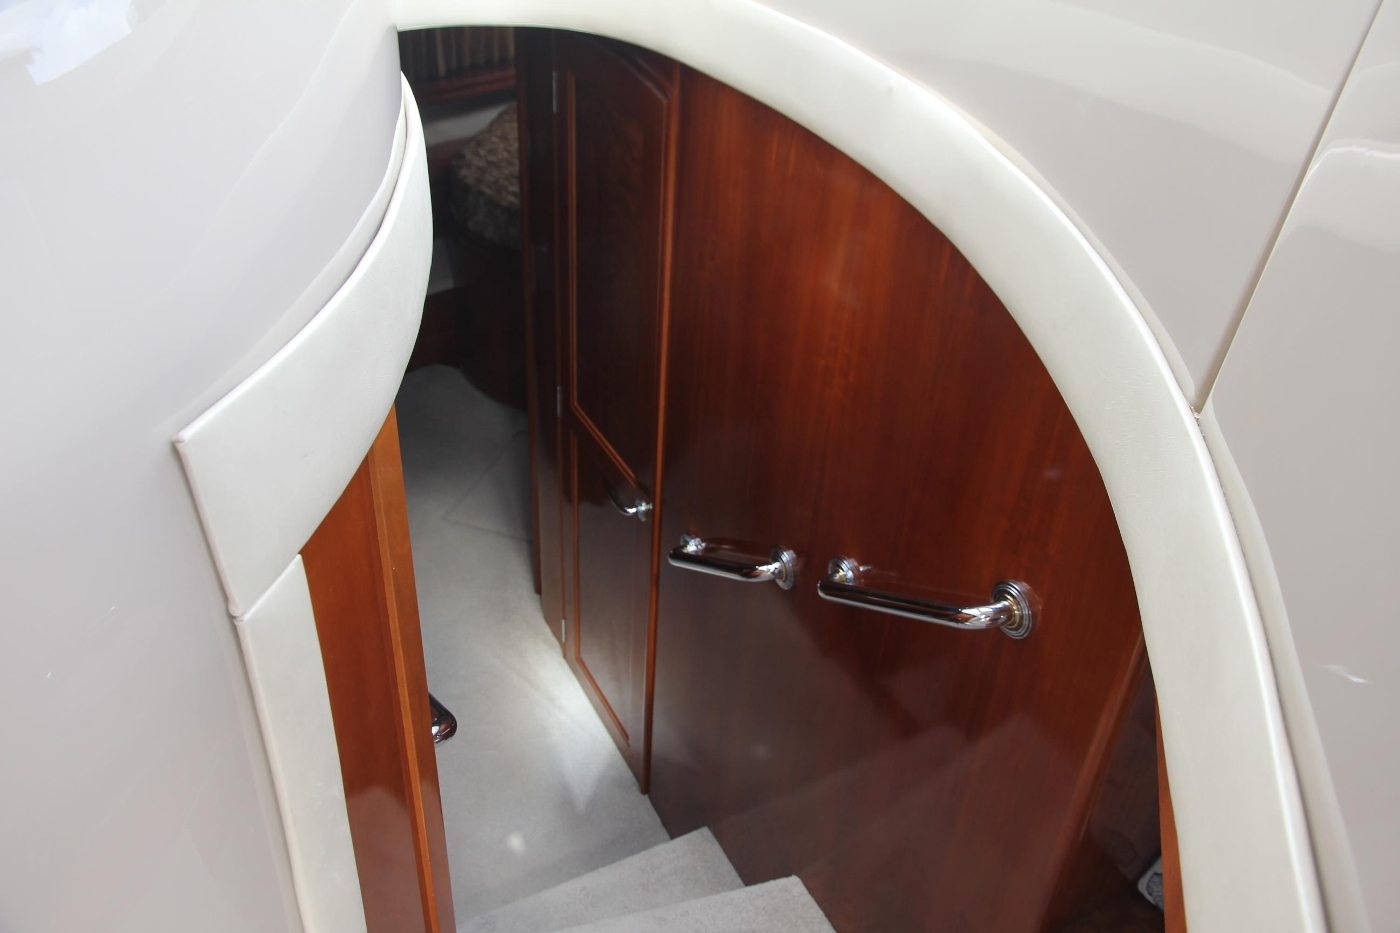 2005 Carver 560 Voyager Pilothouse, Accommodation Companionway